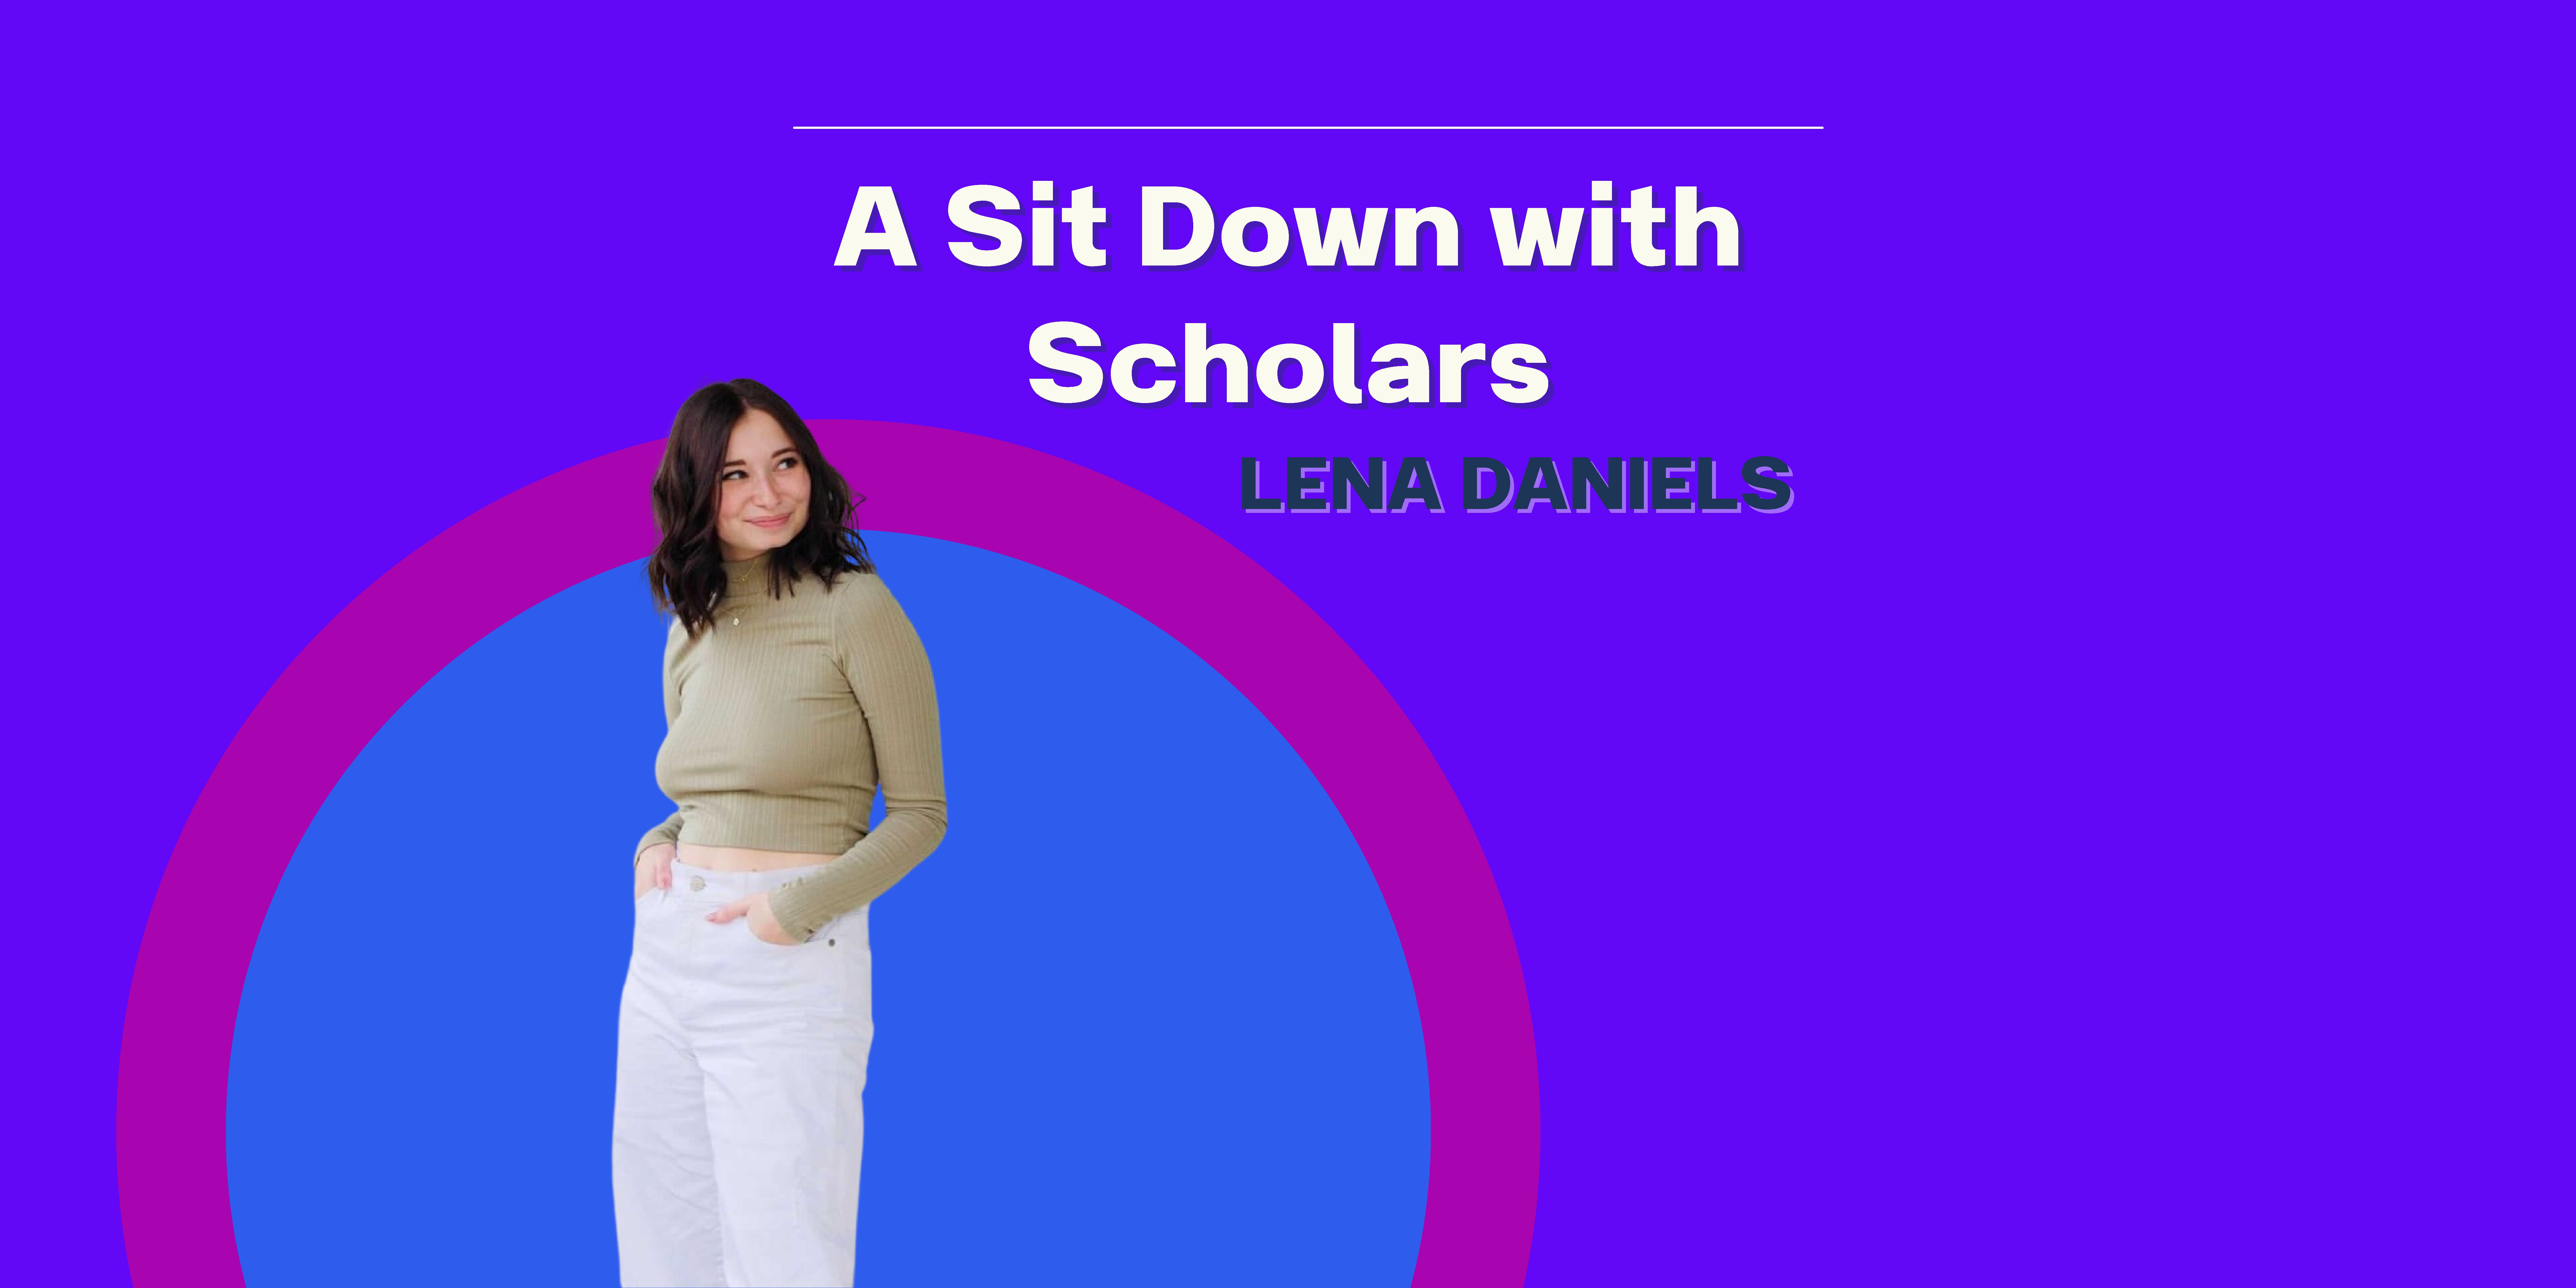 """A Sit Down with Scholars: Episode 2 """"A Sit Down with a Hospitality Major and Instagram Influencer"""""""